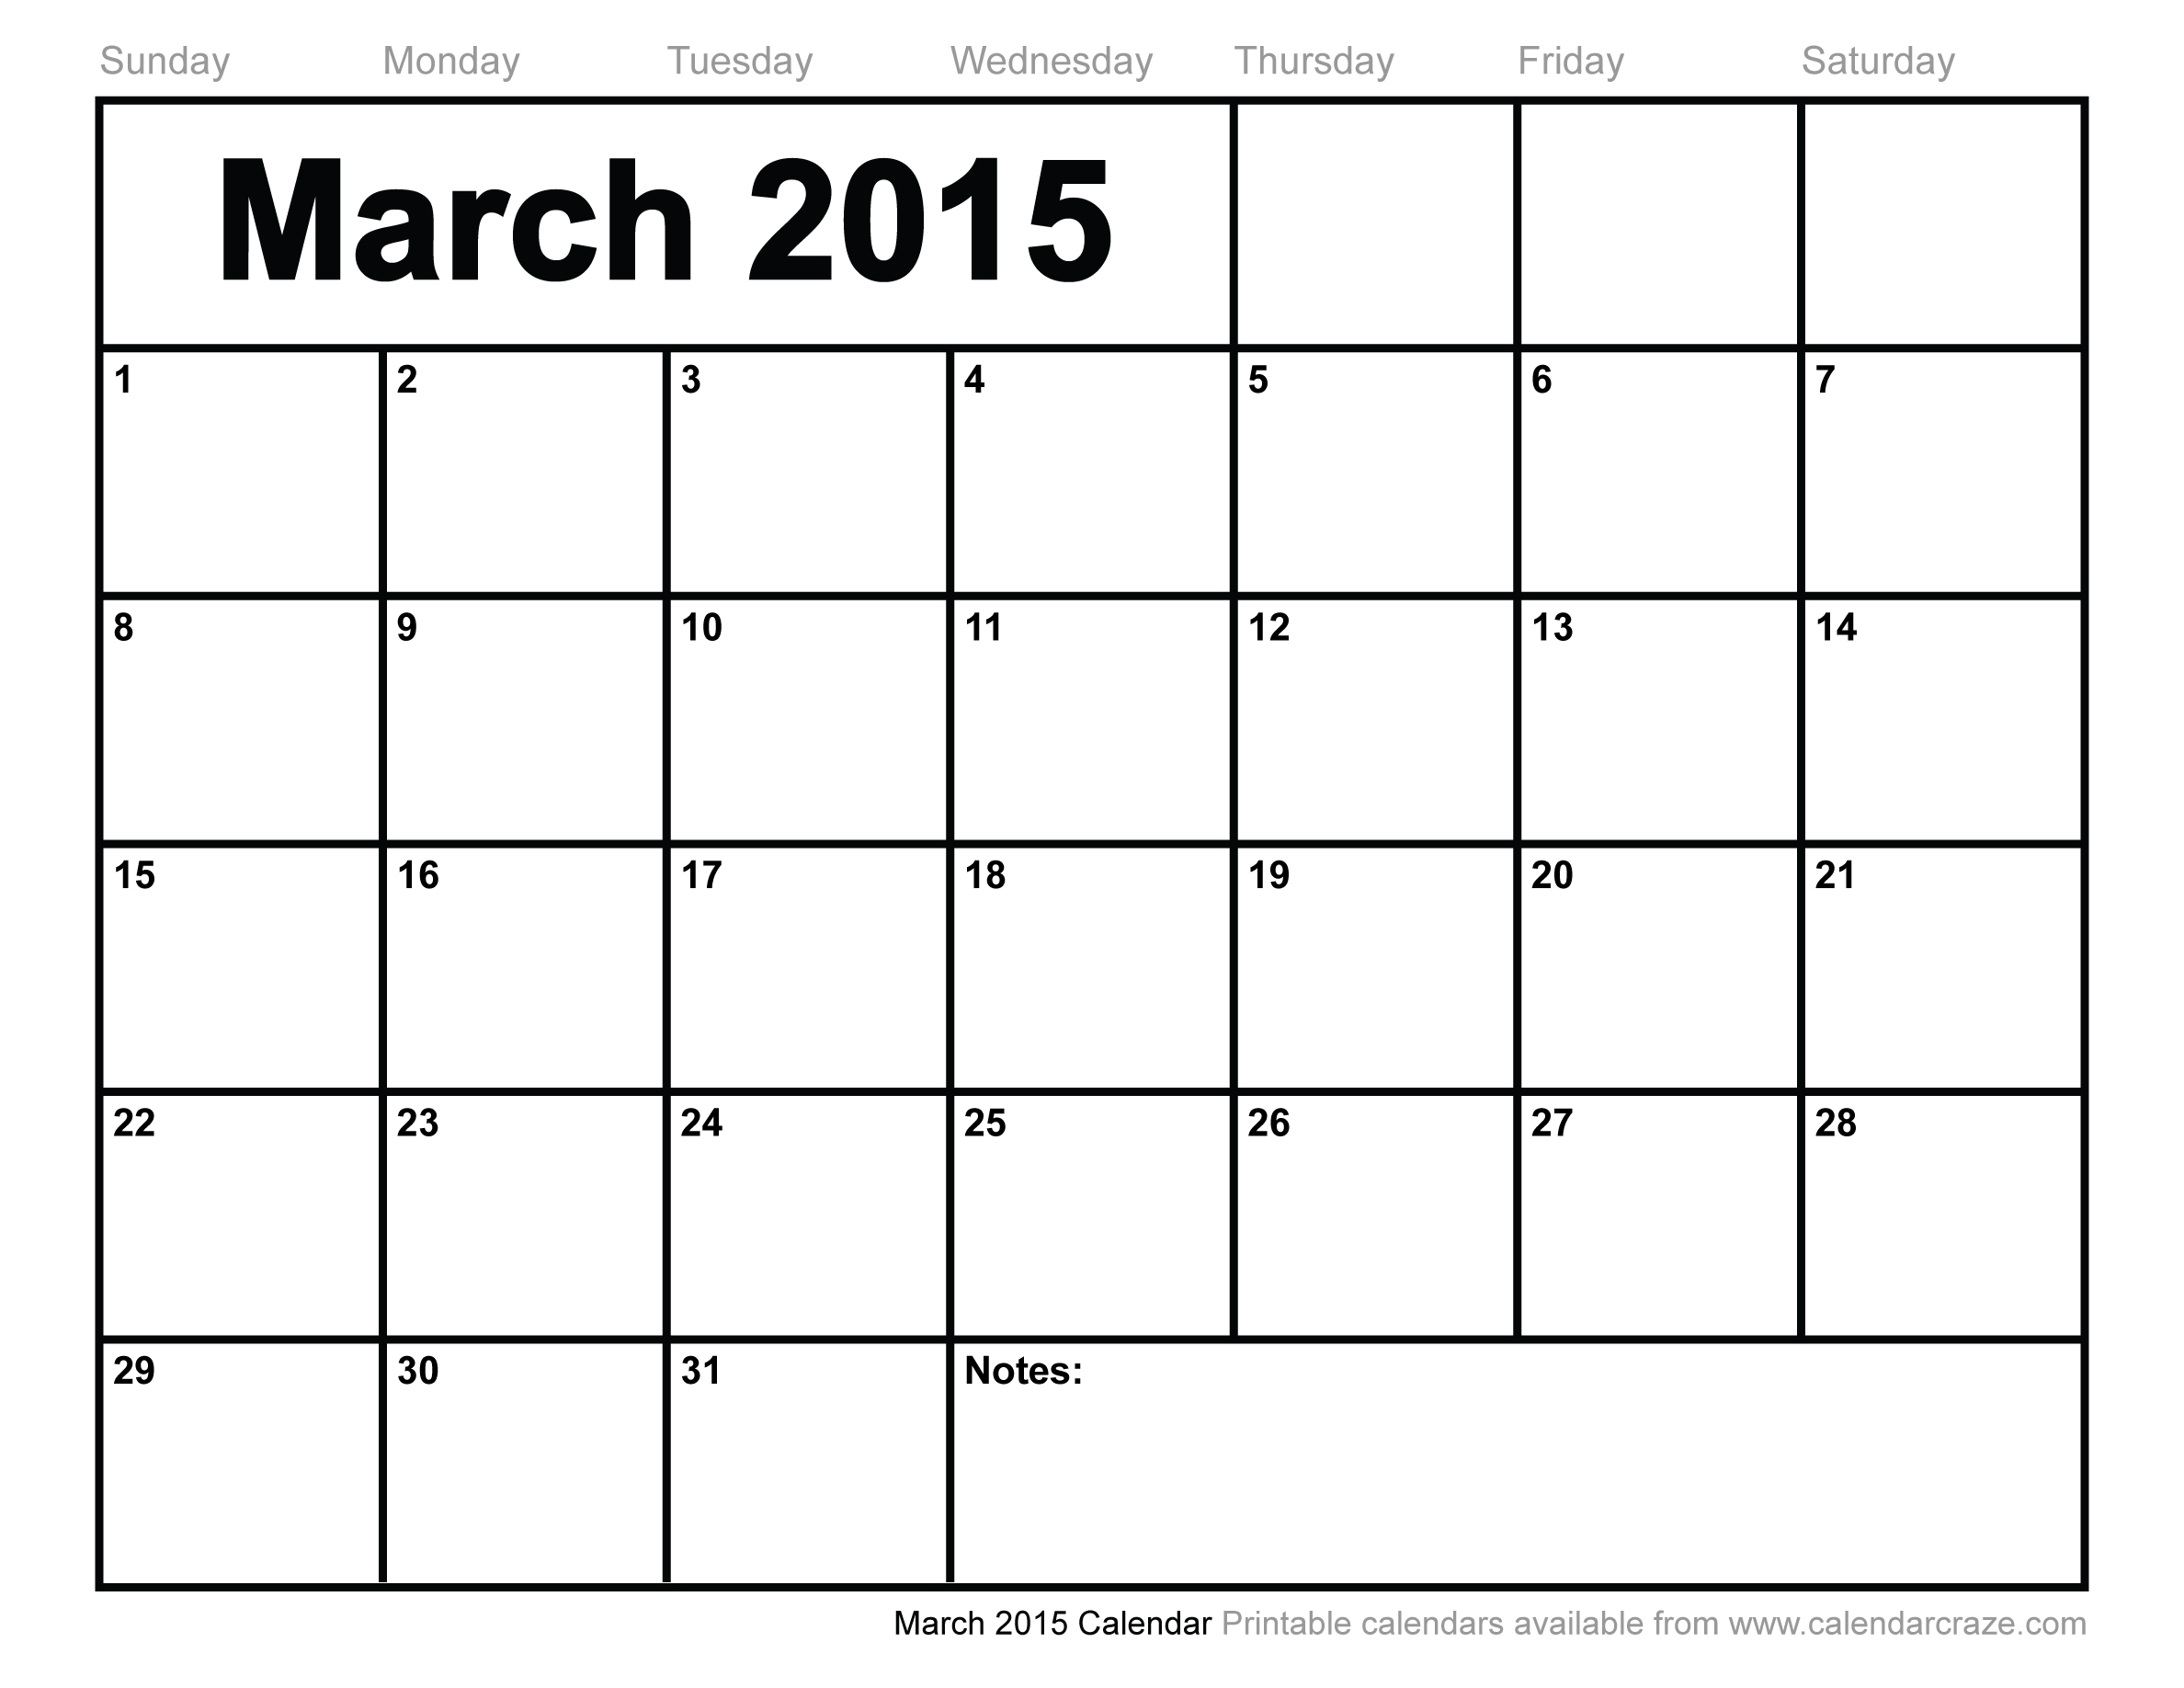 7 Images of February March 2015 Printable Calendars By Month